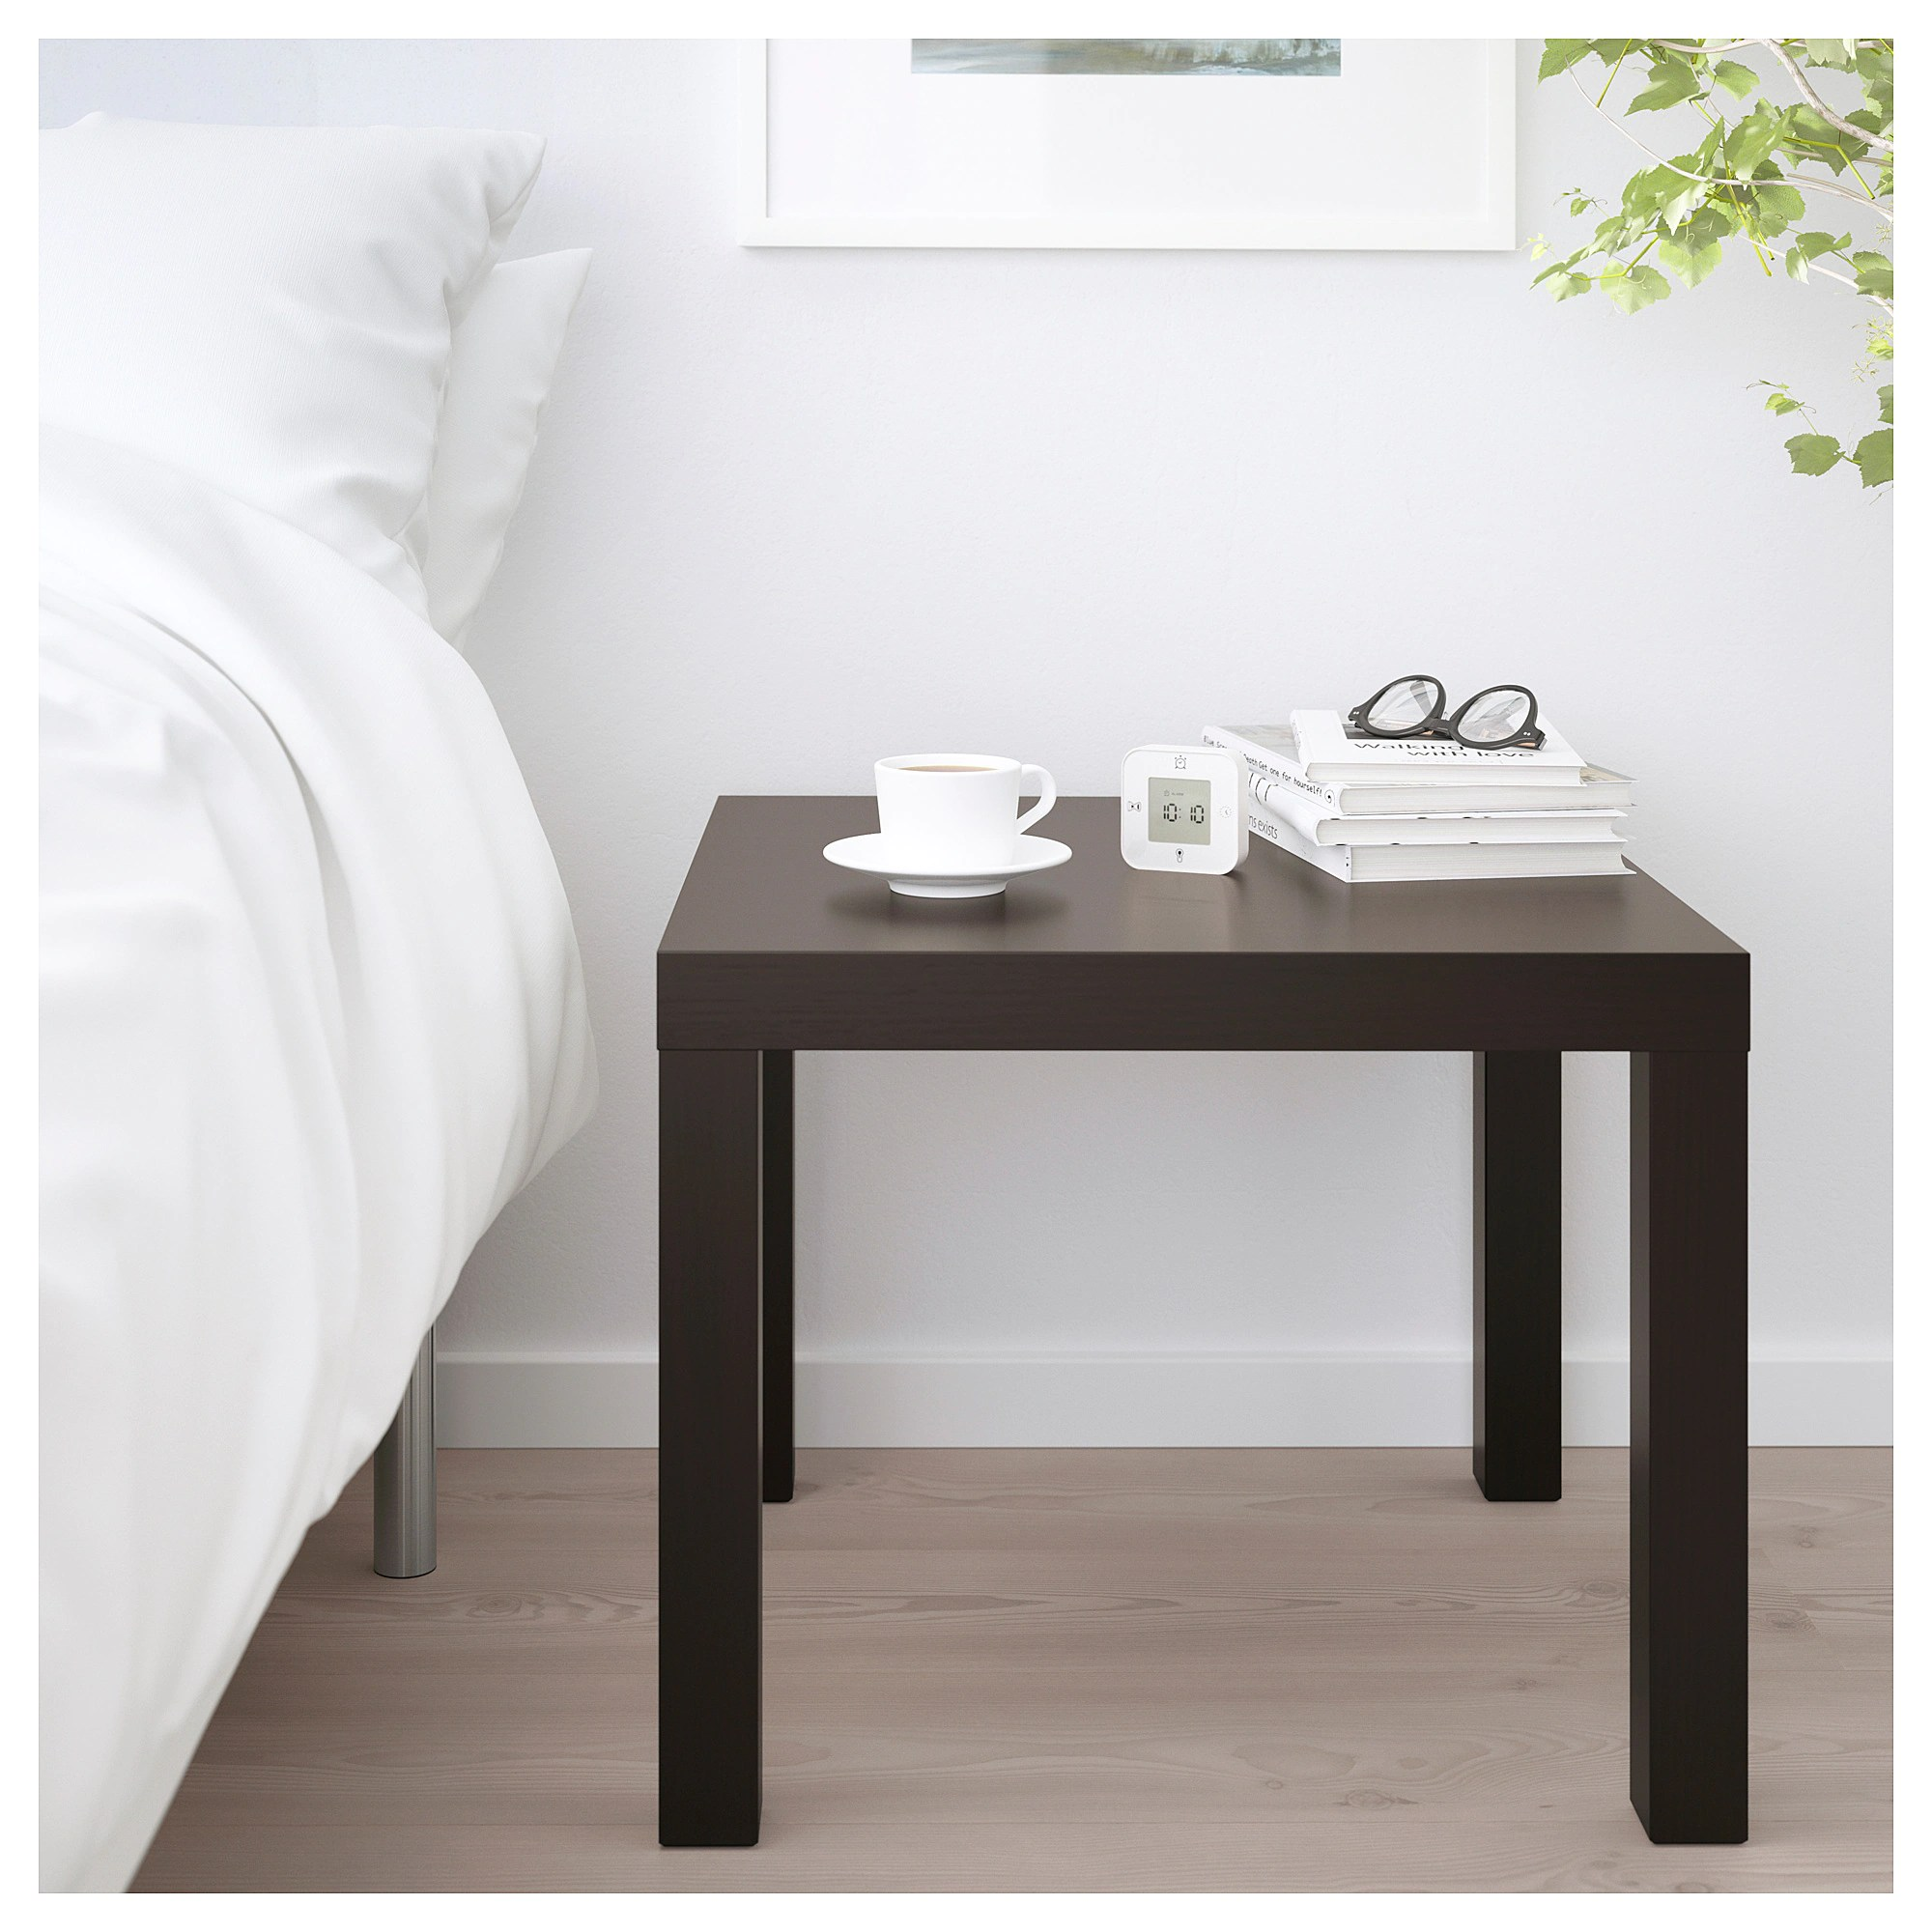 Ikea Table Lack Side Table Black Brown